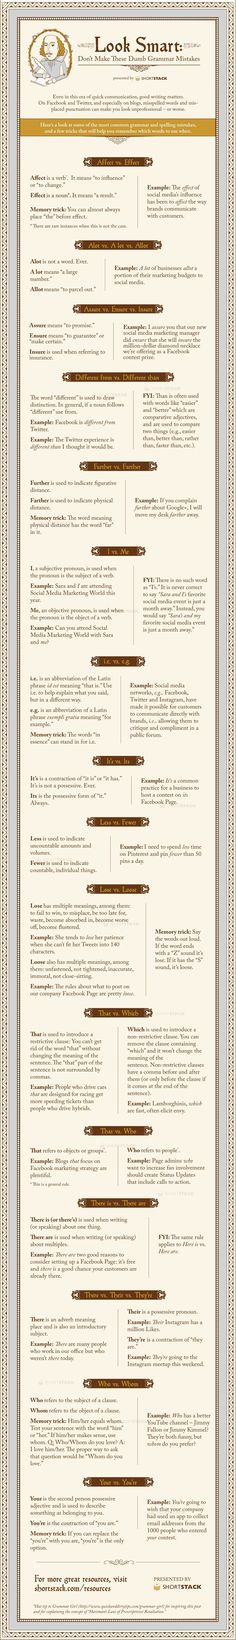 @aenon1mus of @MakeUseOf presents an #infographic on Dumb Grammar Mistakes You Shouldn't Make, But Probably Do